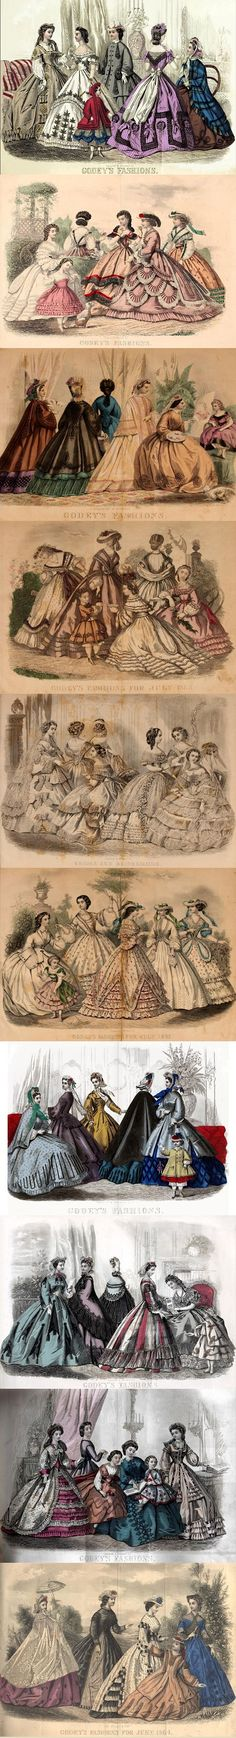 Godey's Lady's Book, September 1864, can be read on DIY Collaboratorium's library page. Almost every issue of Godey's Lady's Book included an illustration, and a pattern with measurements for a garment, to be sewn at home. There are also many long lost crochet patterns.